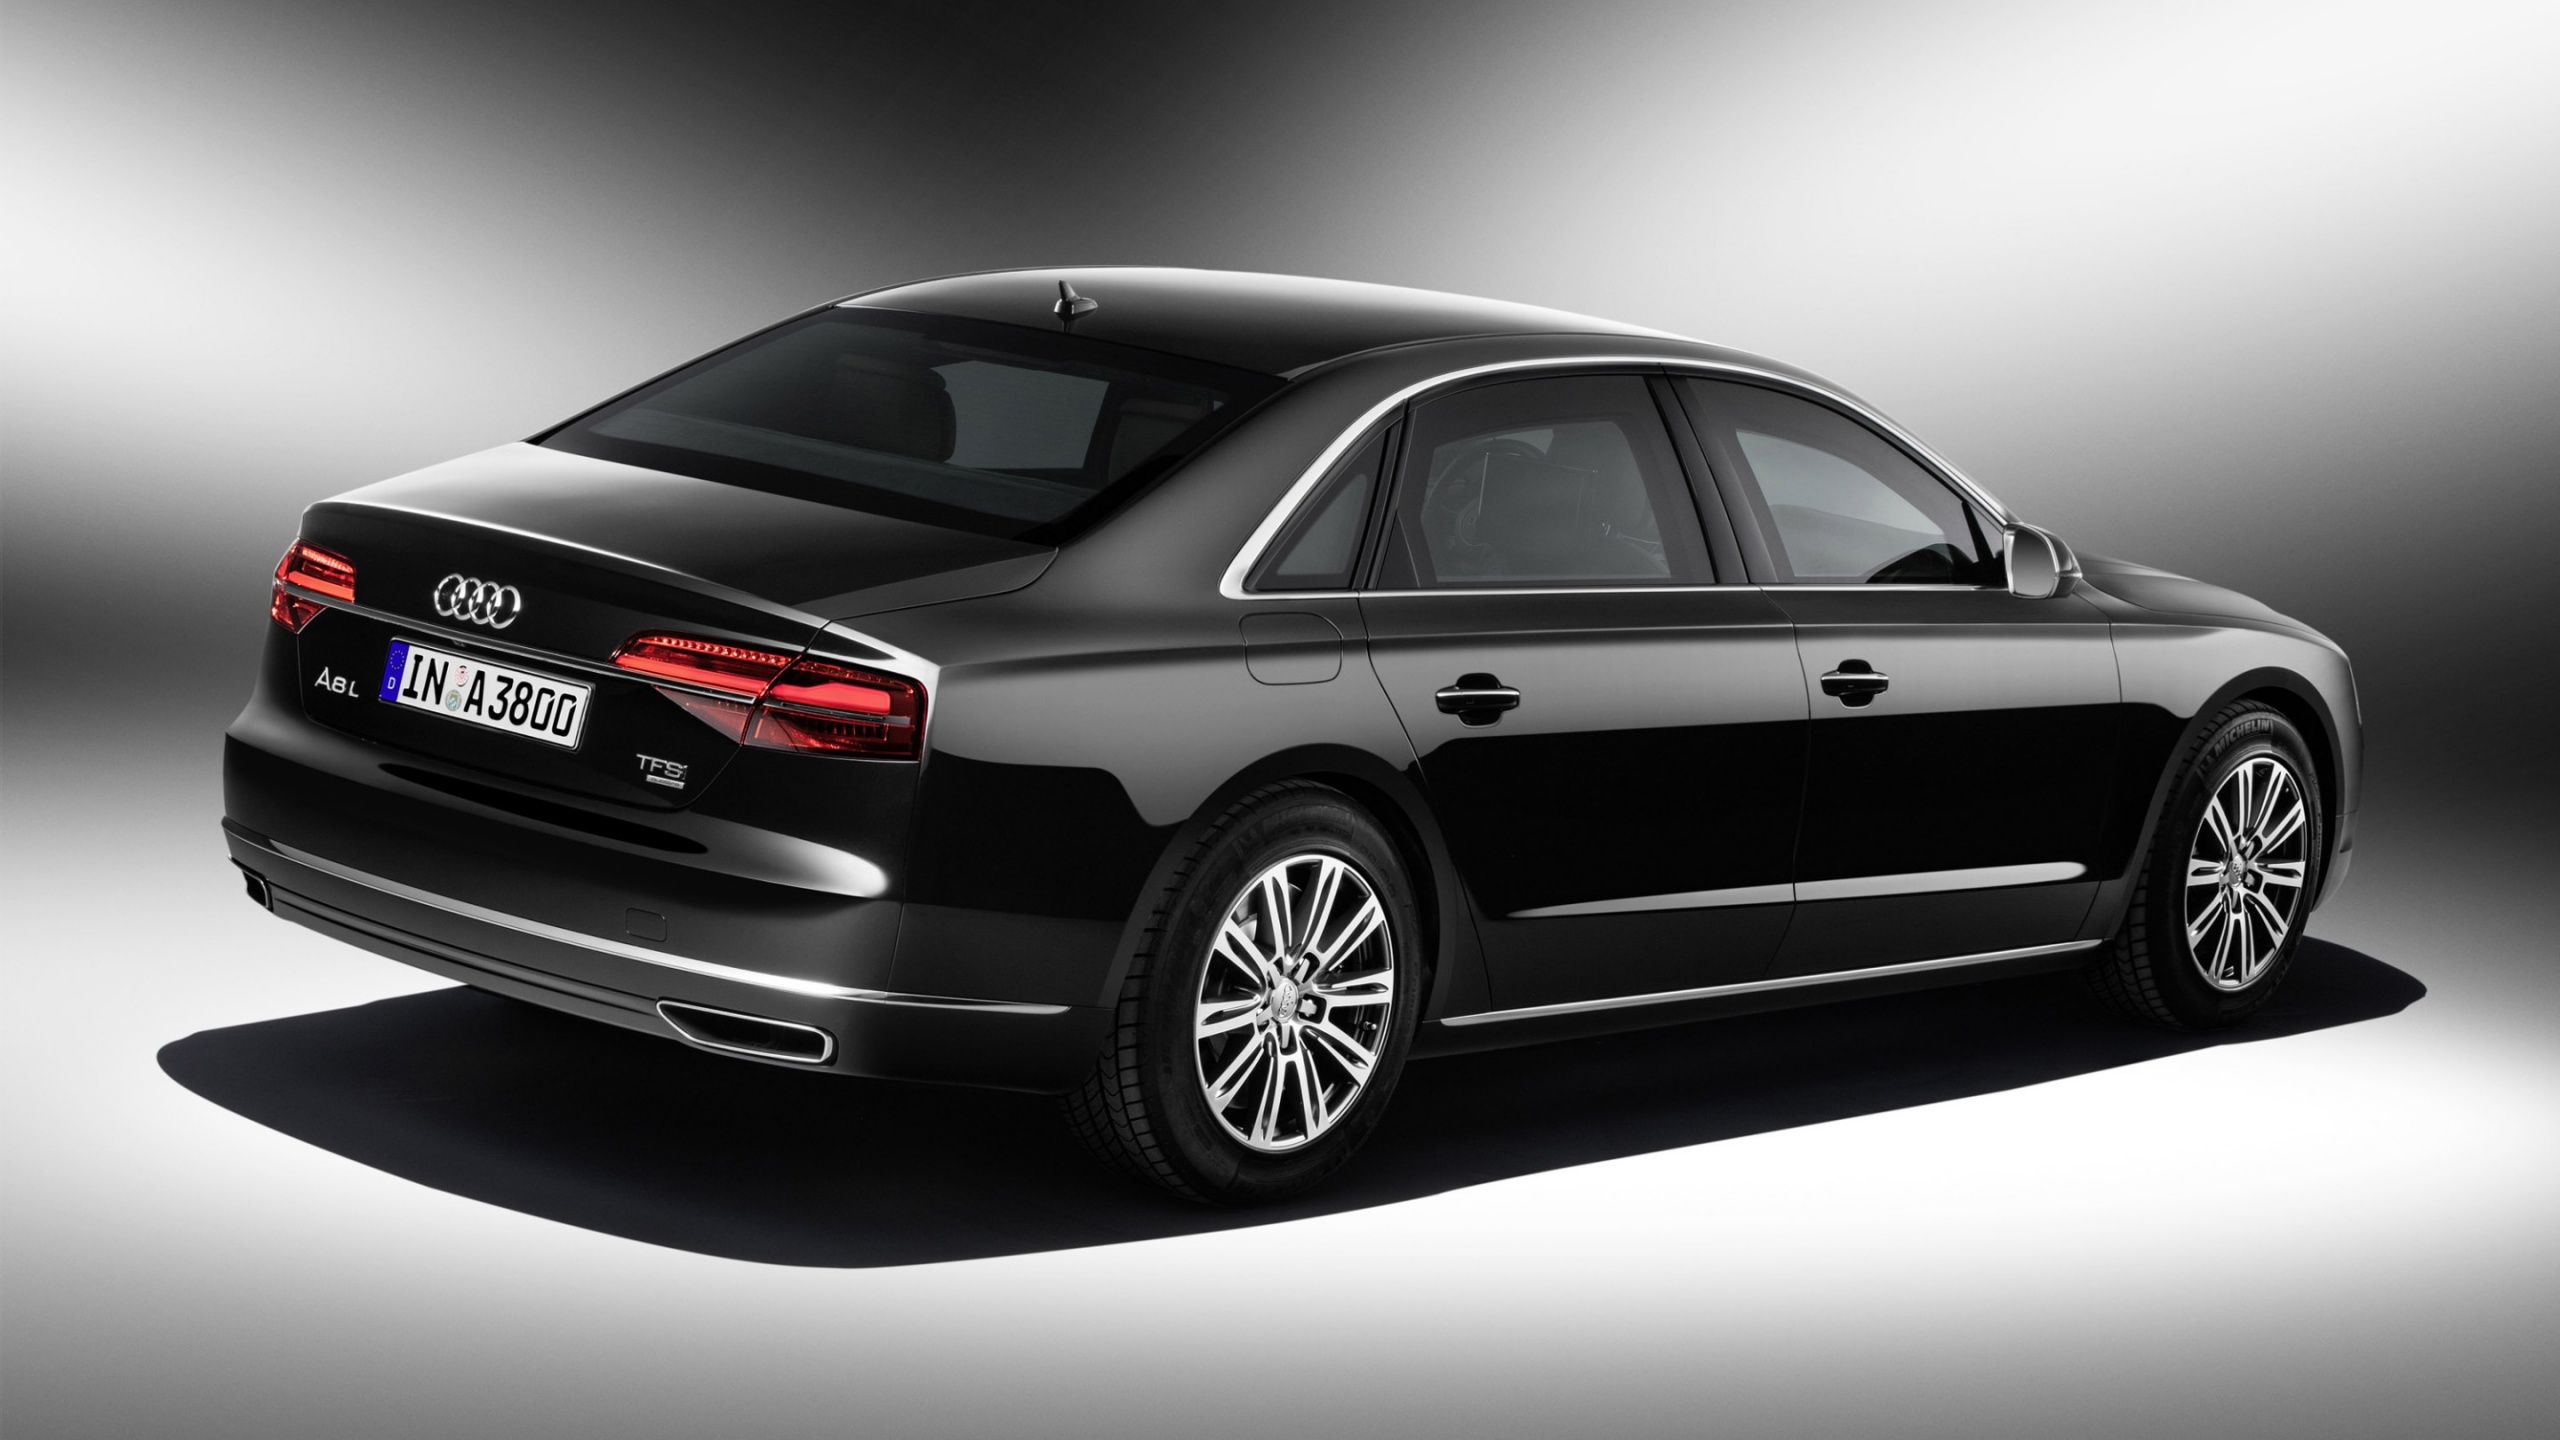 2019 Audi A8 L Security photo - 5